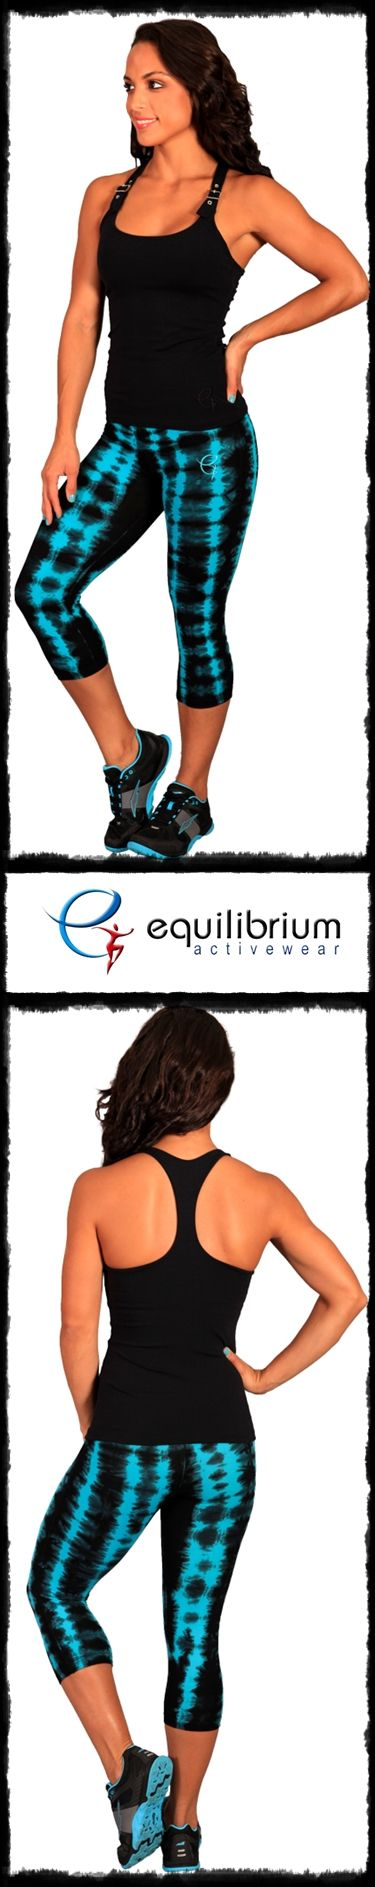 Tie Dye fitness fashion from equilibrium activewear